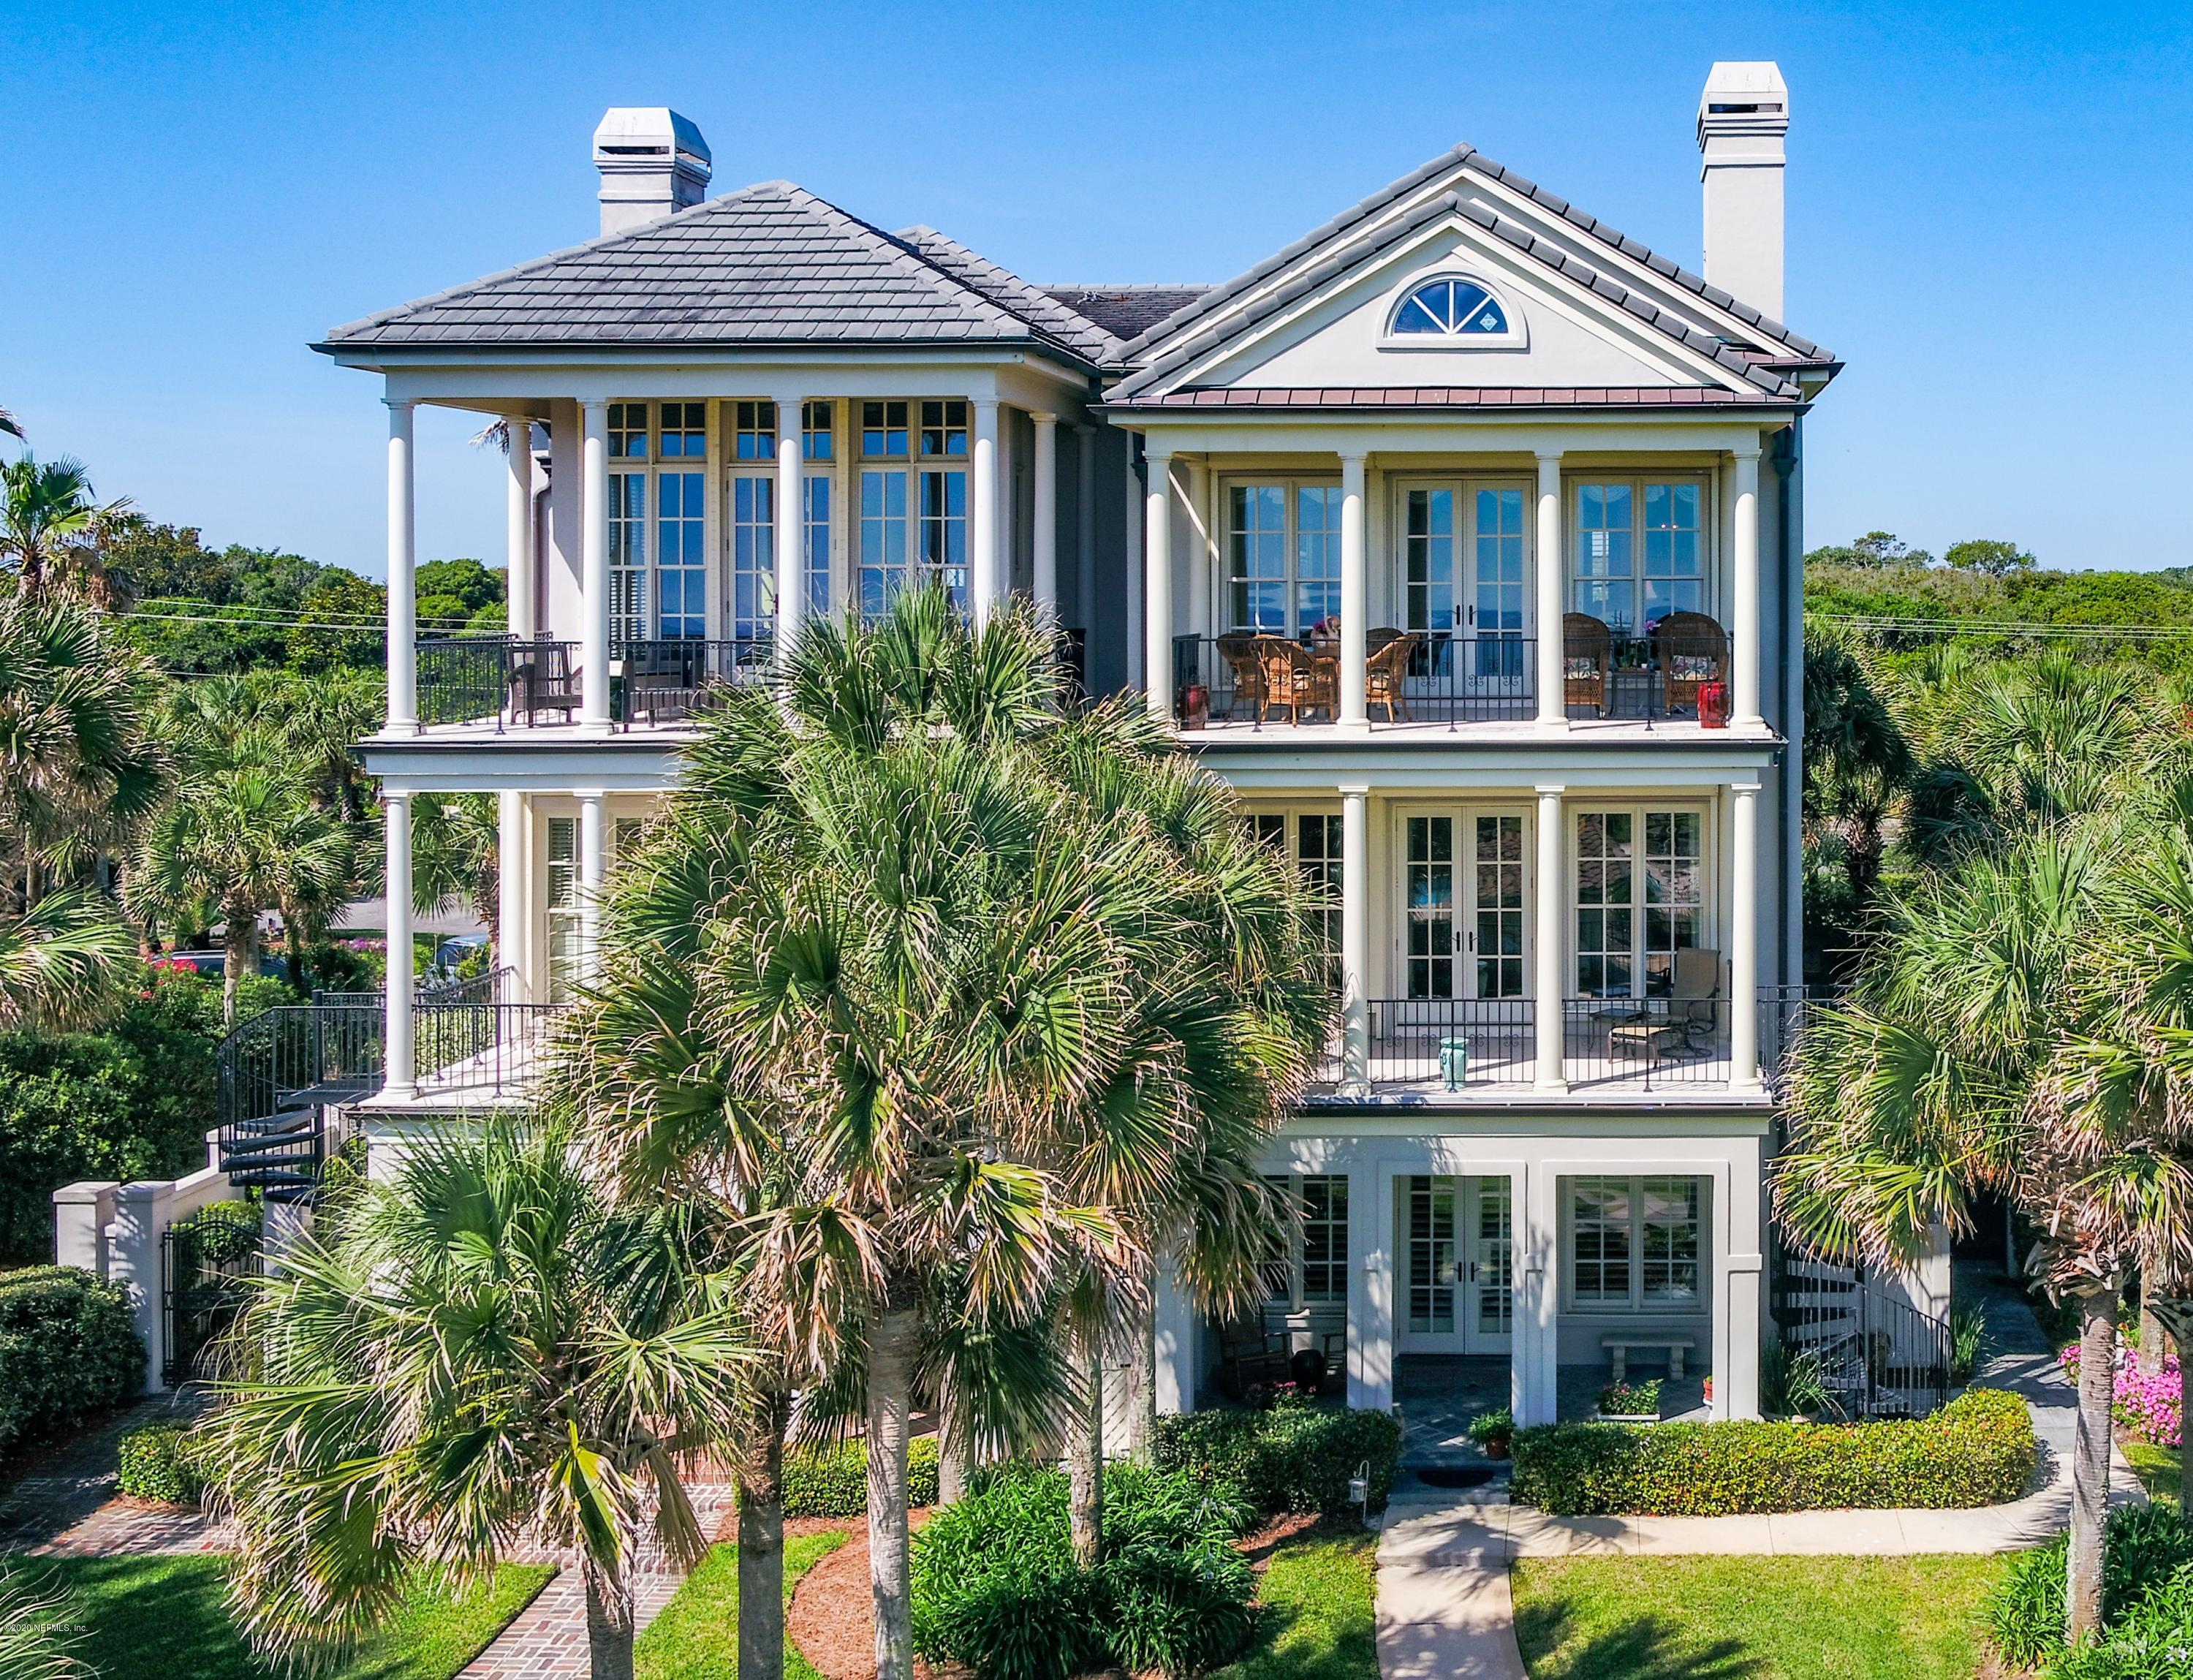 8160 RESIDENCE, FERNANDINA BEACH, FLORIDA 32034, 5 Bedrooms Bedrooms, ,5 BathroomsBathrooms,Residential,For sale,RESIDENCE,1051867